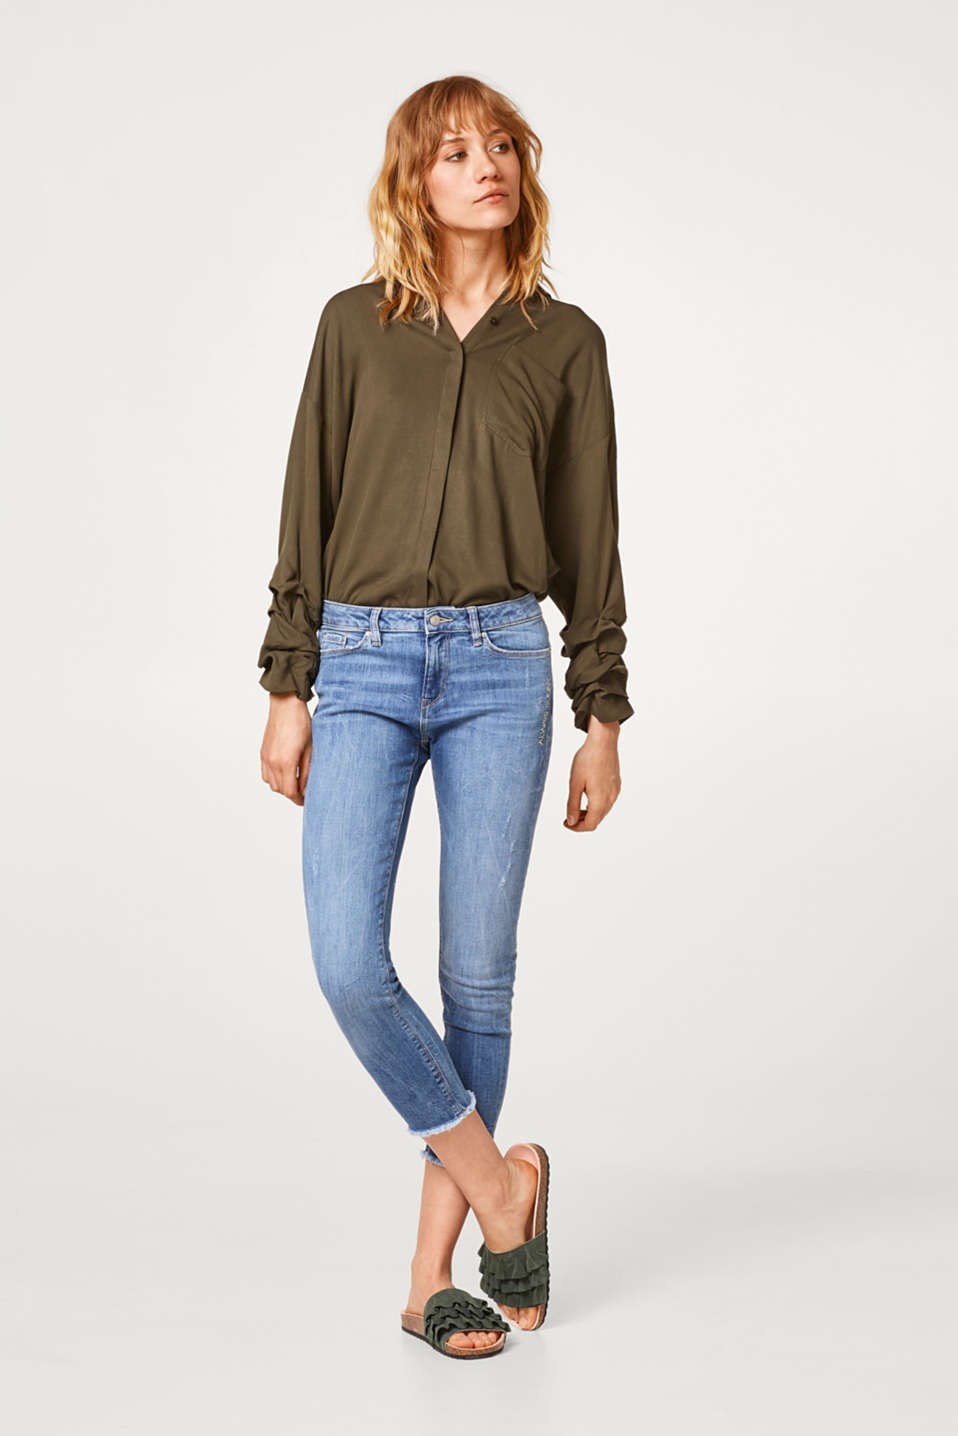 Esprit - Stretchy Capri-length jeans with an embroidery